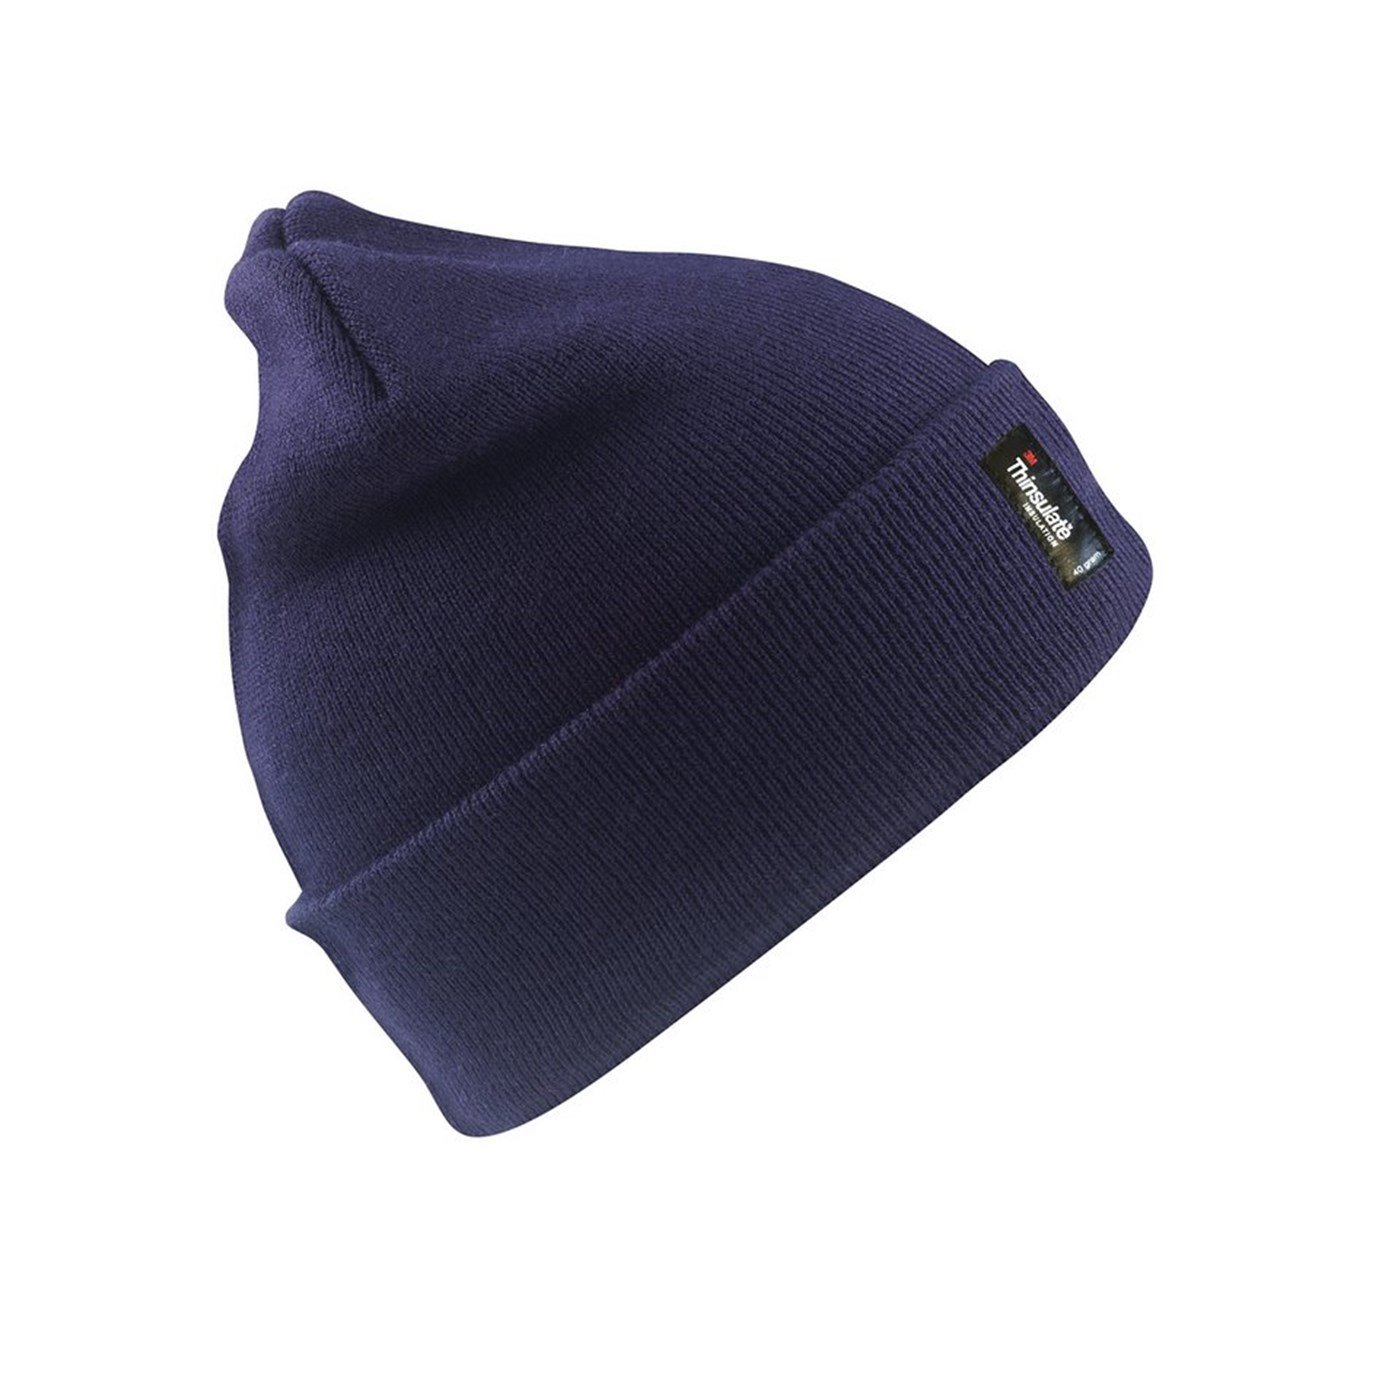 65ac4d48 Result Winter Essentials Adult's Thinsulate Ski Hat RC033